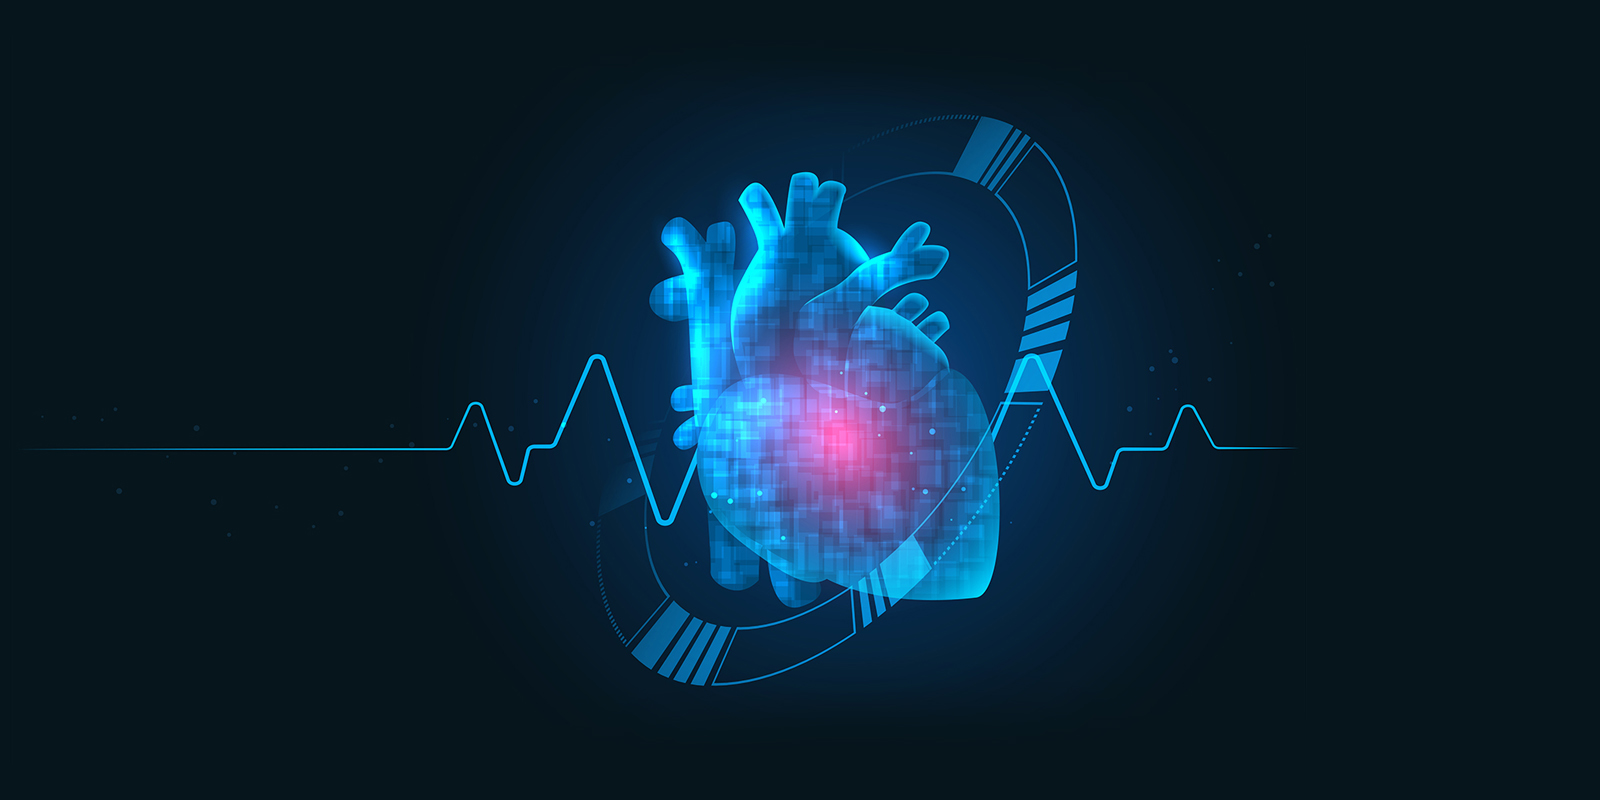 HeartBeatCVI – Our AI enabled CardioVascular Imaging Product